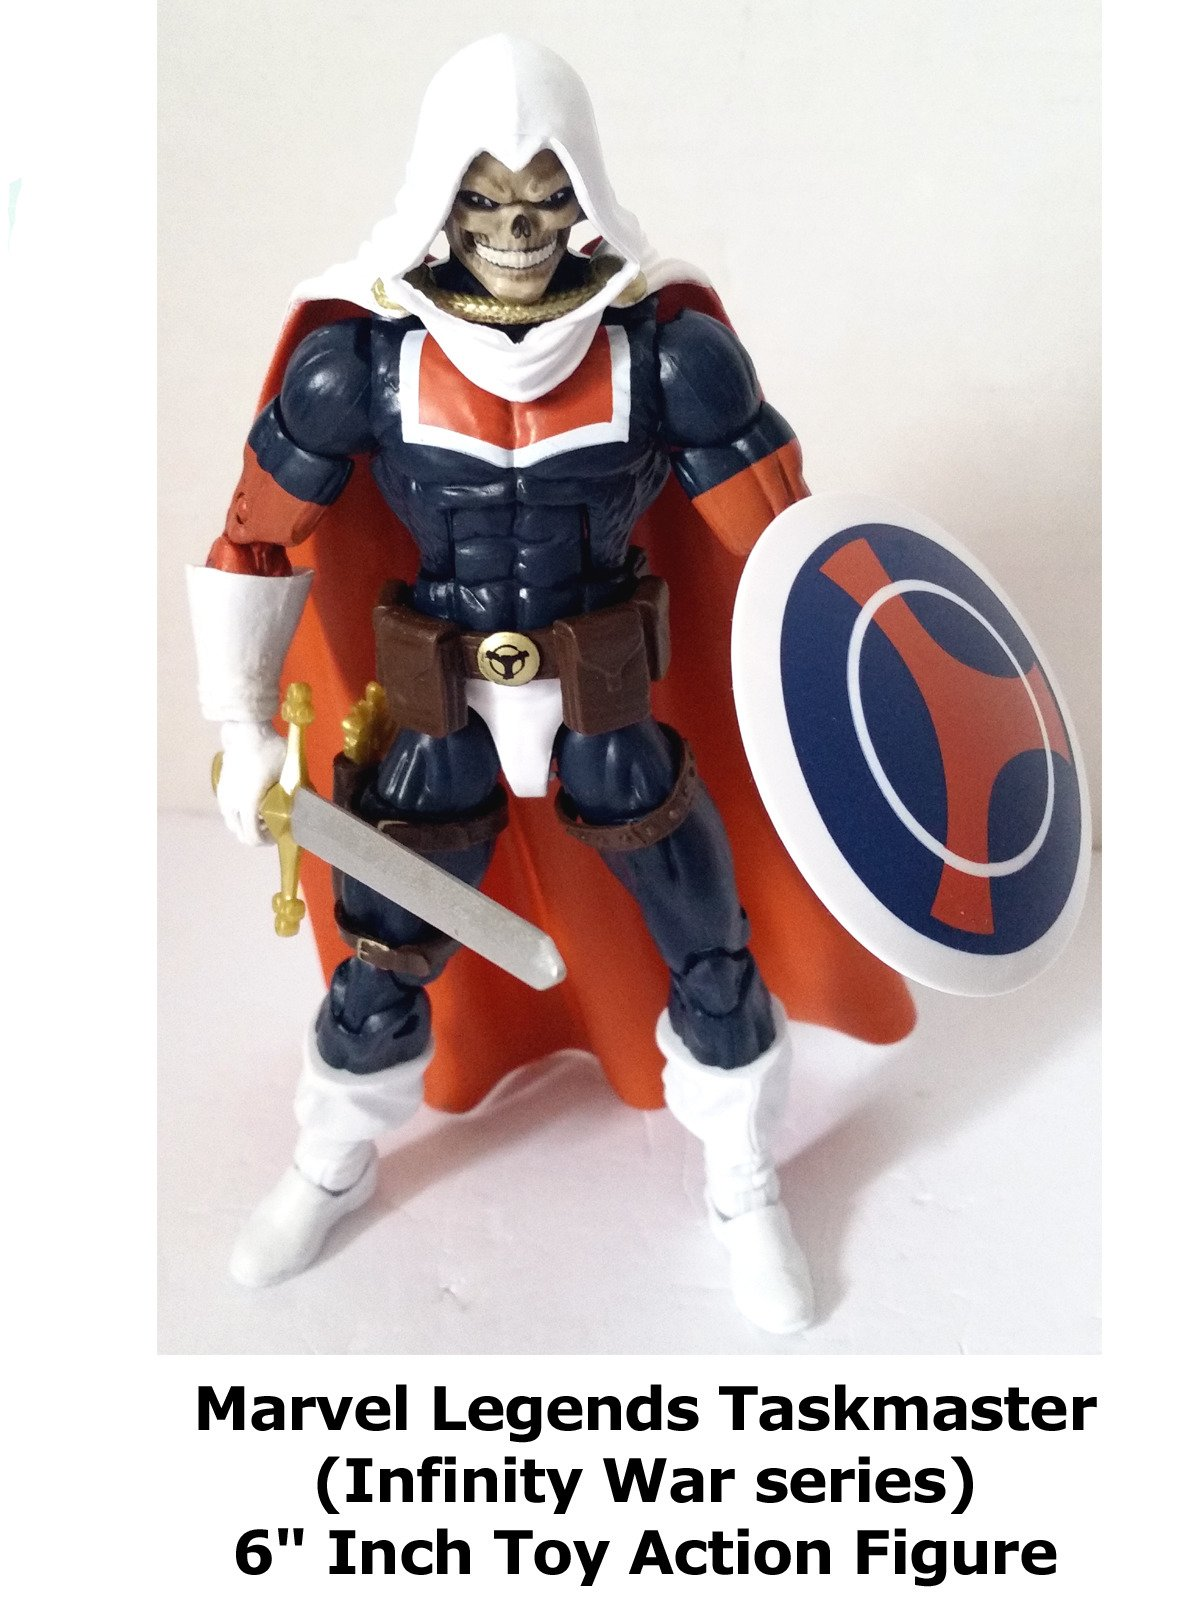 "Review: Marvel Legends Taskmaster (Infinity War series) 6"" Inch Toy Action Figure on Amazon Prime Instant Video UK"